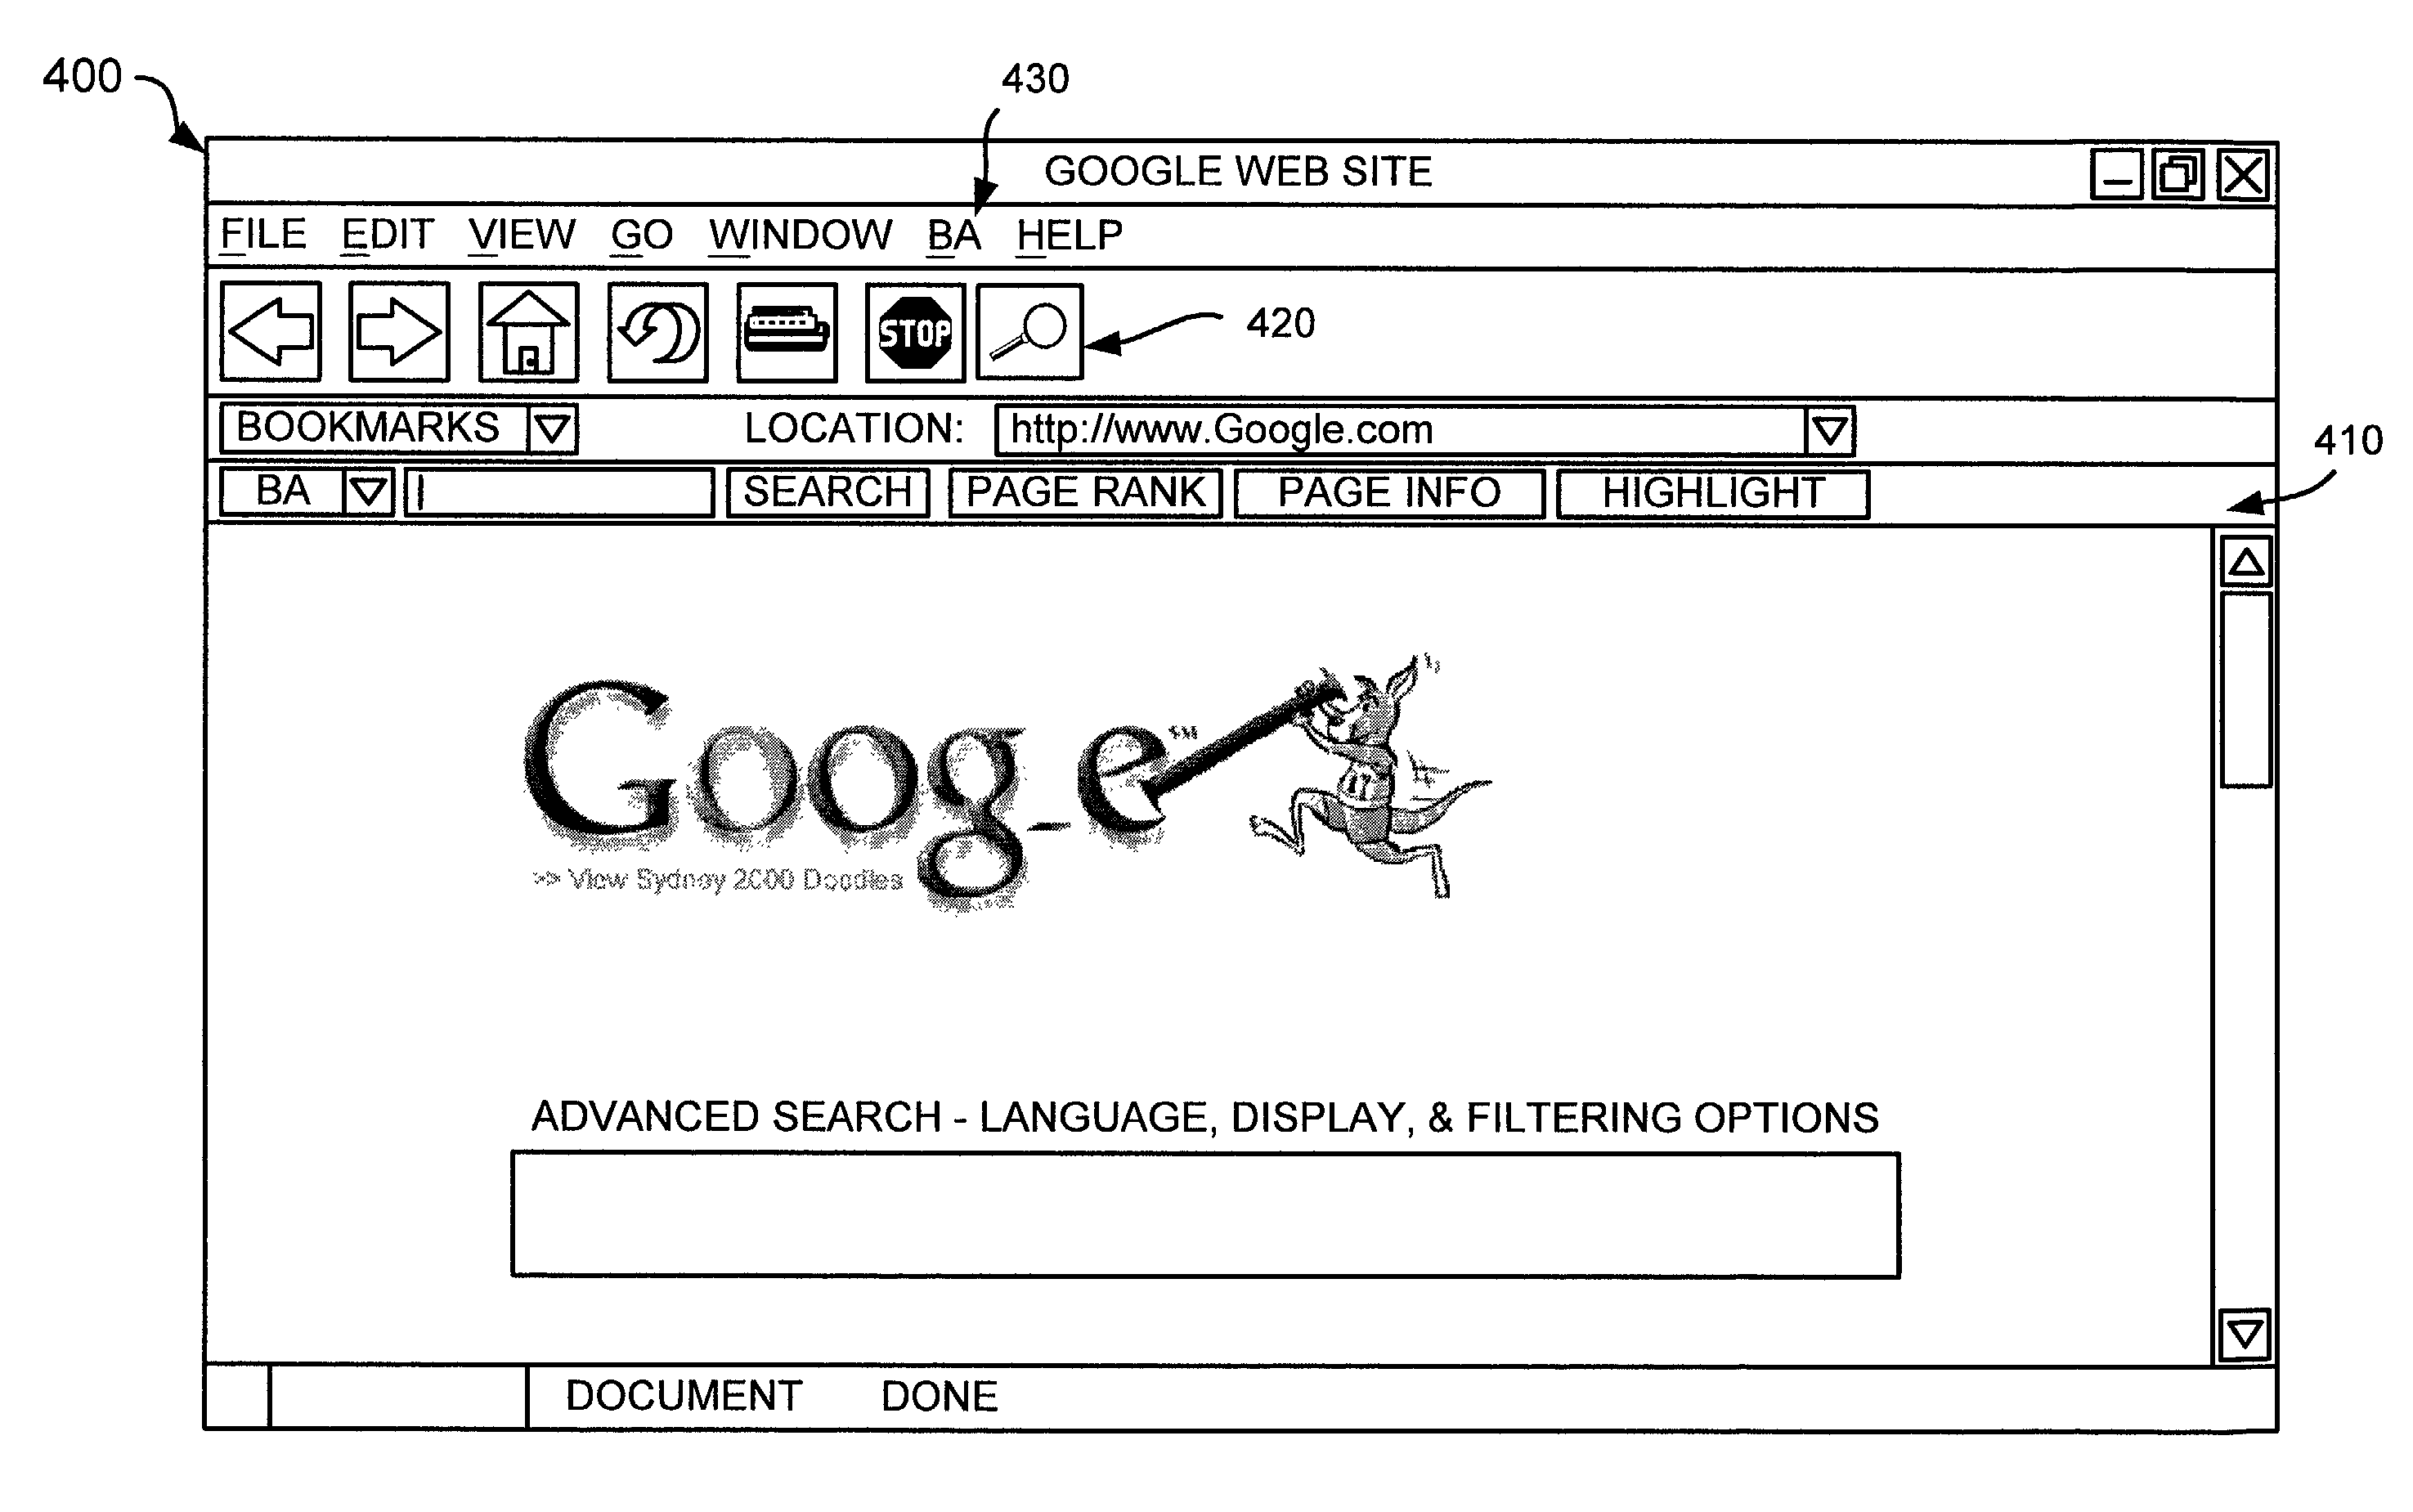 Google  patent by Mark Zuckerberg from 2012 for scoring links in a document - US8127220